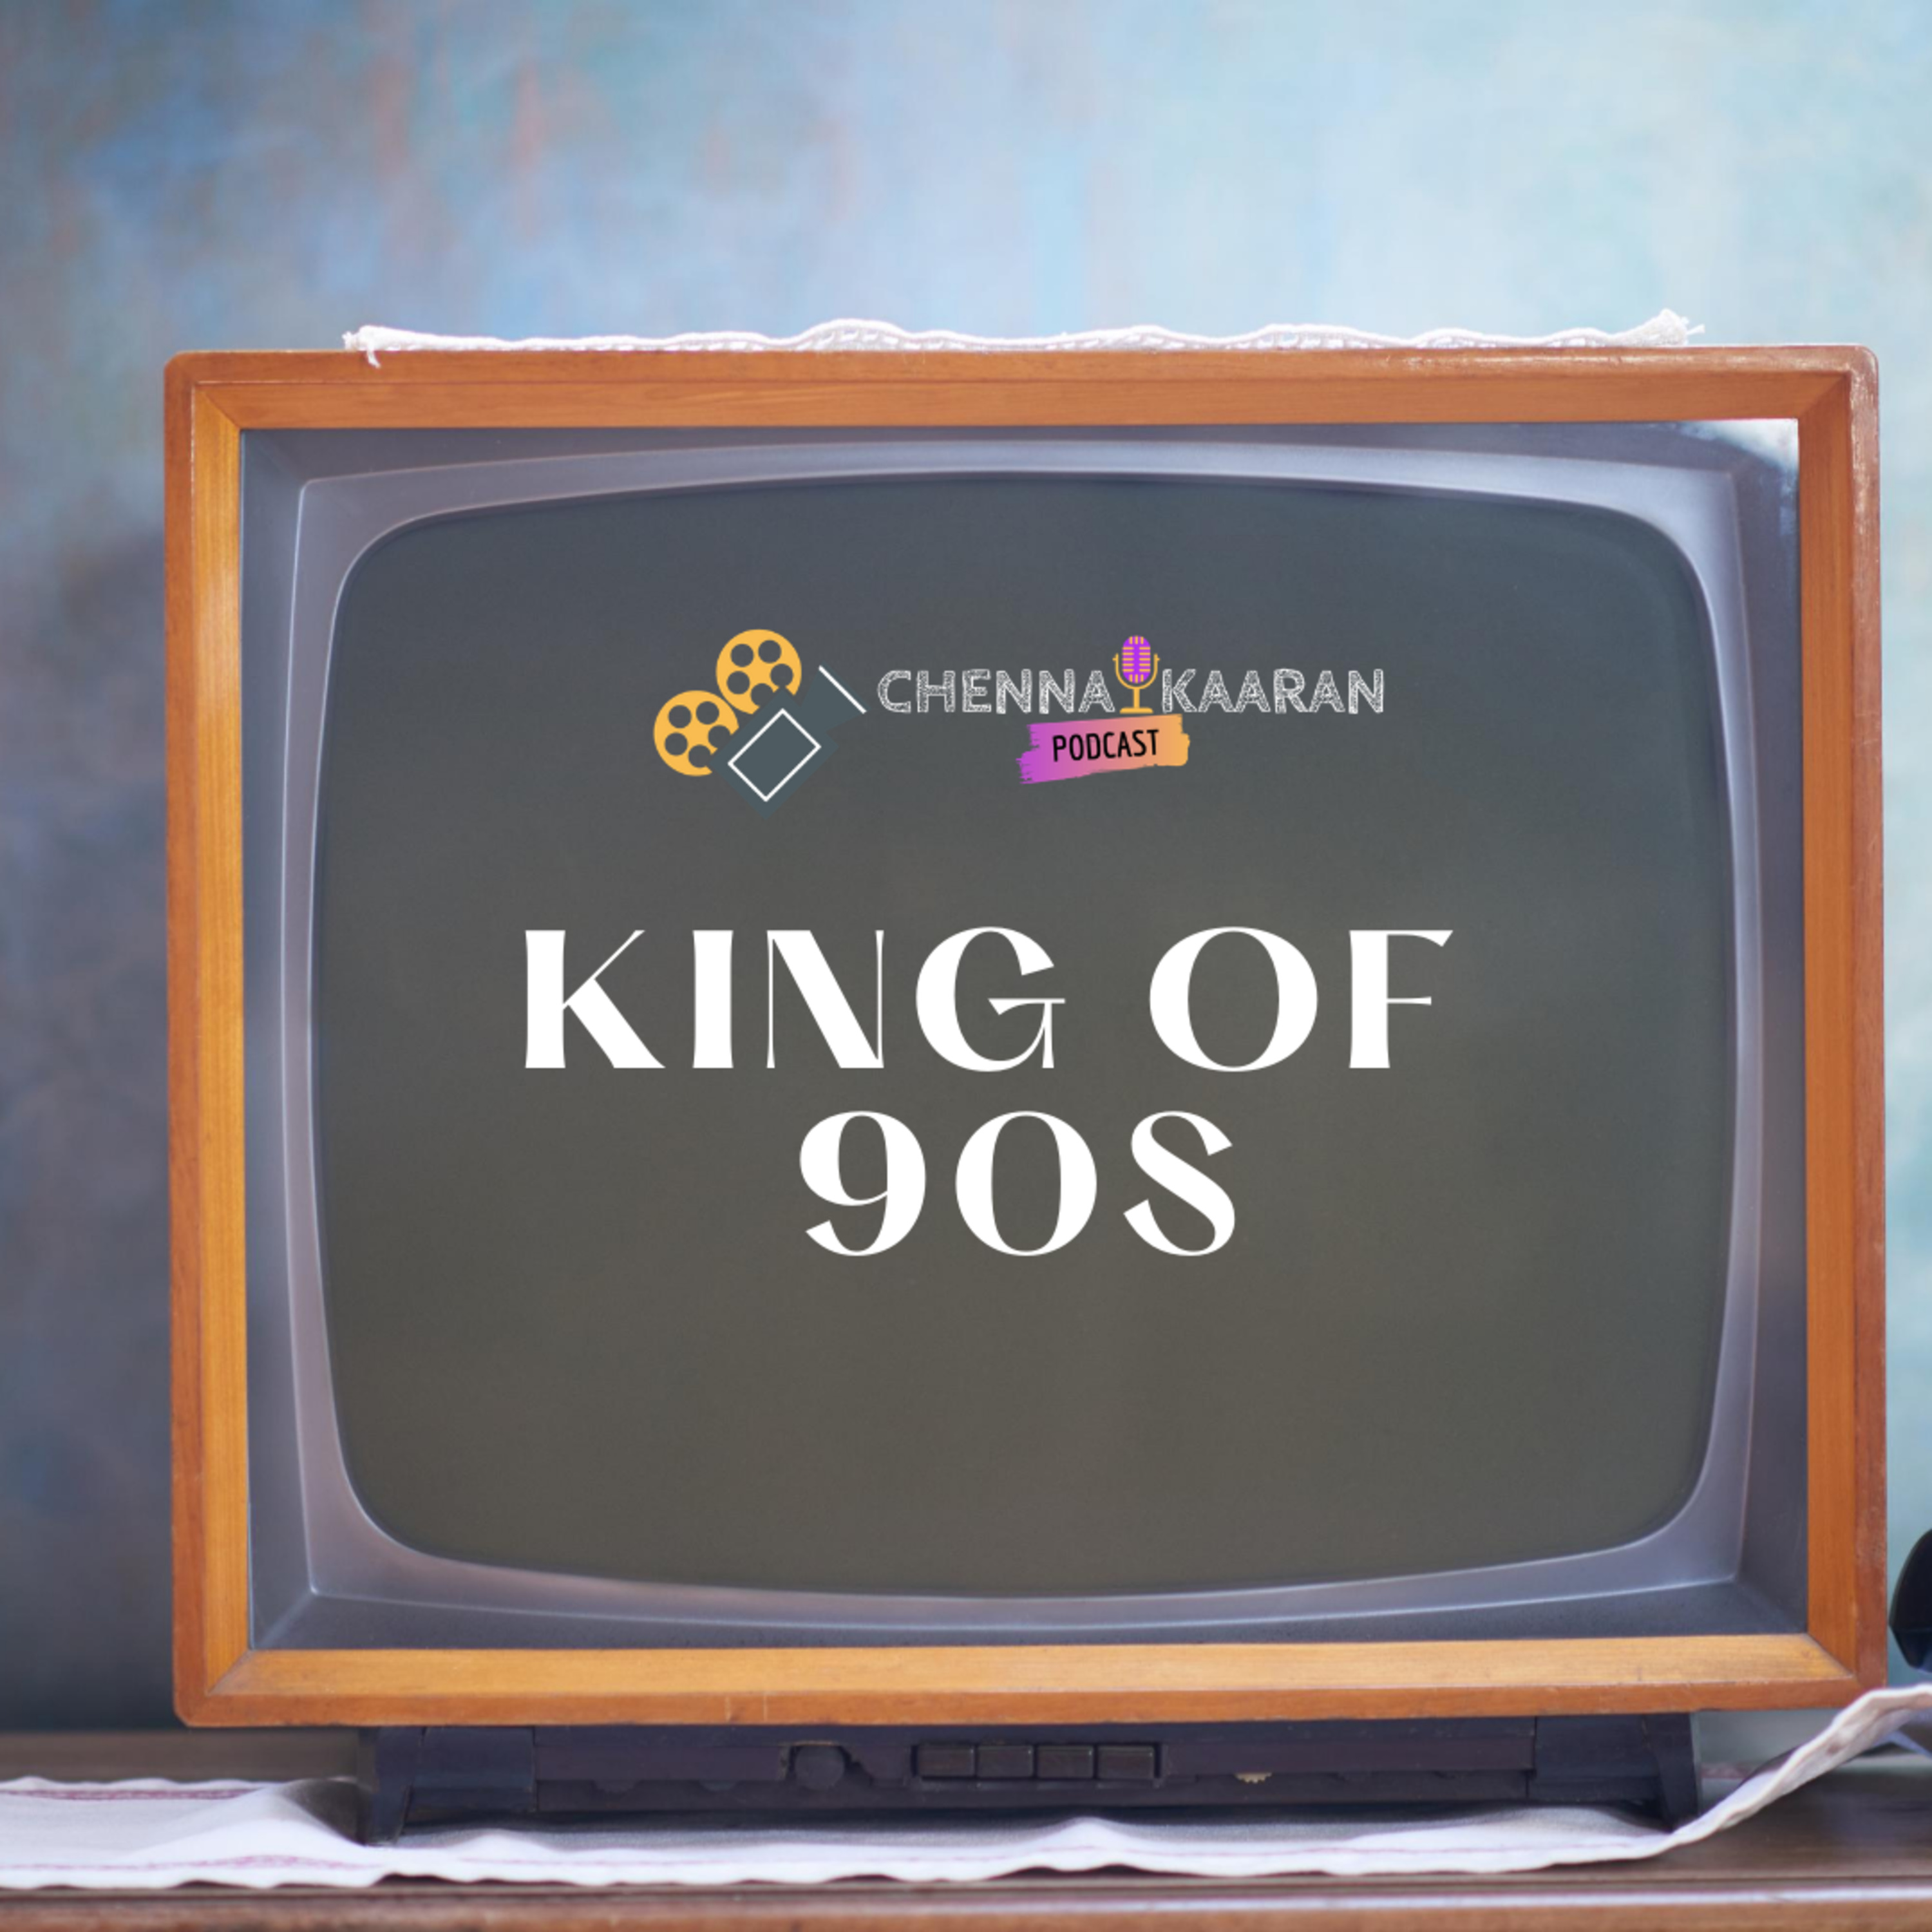 S2E10 - King of 90's - 30 Years of Top Star Prashanth (Special Episode)